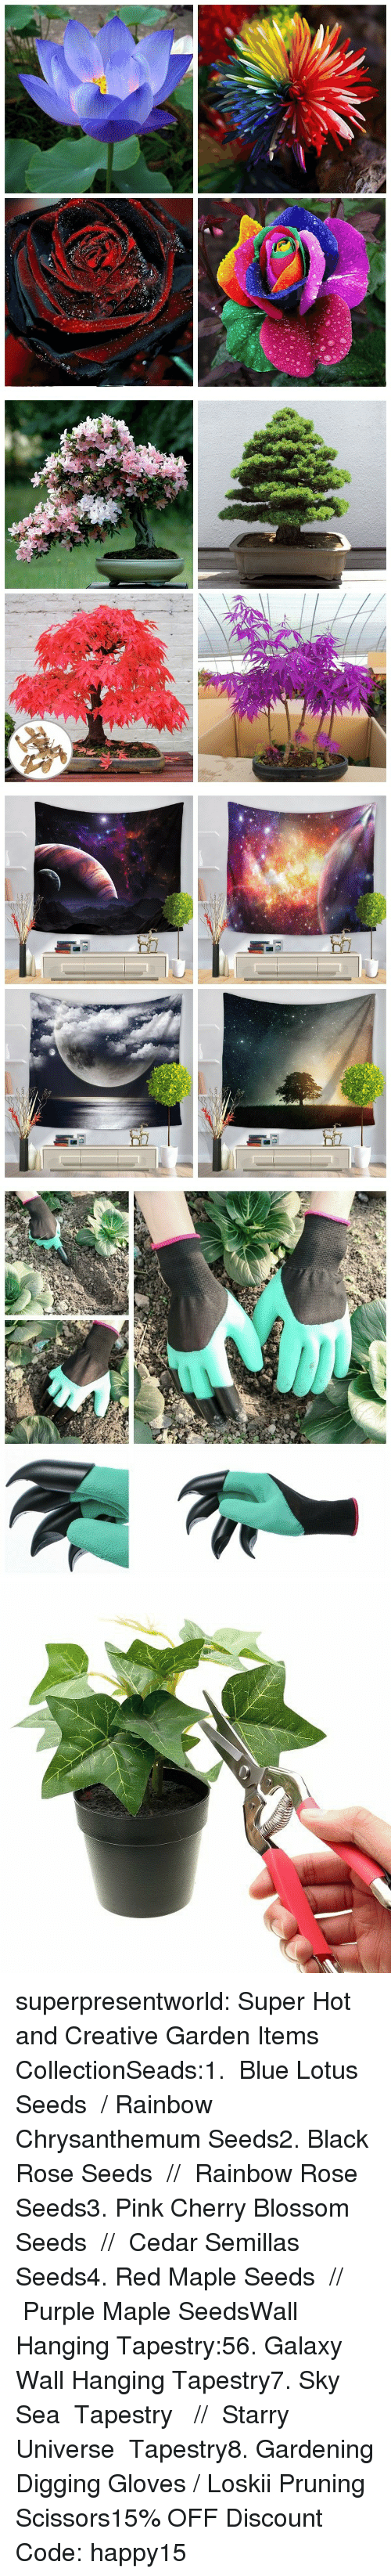 Gardening: superpresentworld:  Super Hot and Creative Garden Items CollectionSeads:1. Blue Lotus Seeds / Rainbow Chrysanthemum Seeds2. Black Rose Seeds // Rainbow Rose Seeds3. Pink Cherry Blossom Seeds // Cedar Semillas Seeds4. Red Maple Seeds // Purple Maple SeedsWall Hanging Tapestry:56. Galaxy Wall Hanging Tapestry7. Sky Sea Tapestry  // Starry Universe Tapestry8. Gardening Digging Gloves / Loskii Pruning Scissors15% OFF Discount Code: happy15